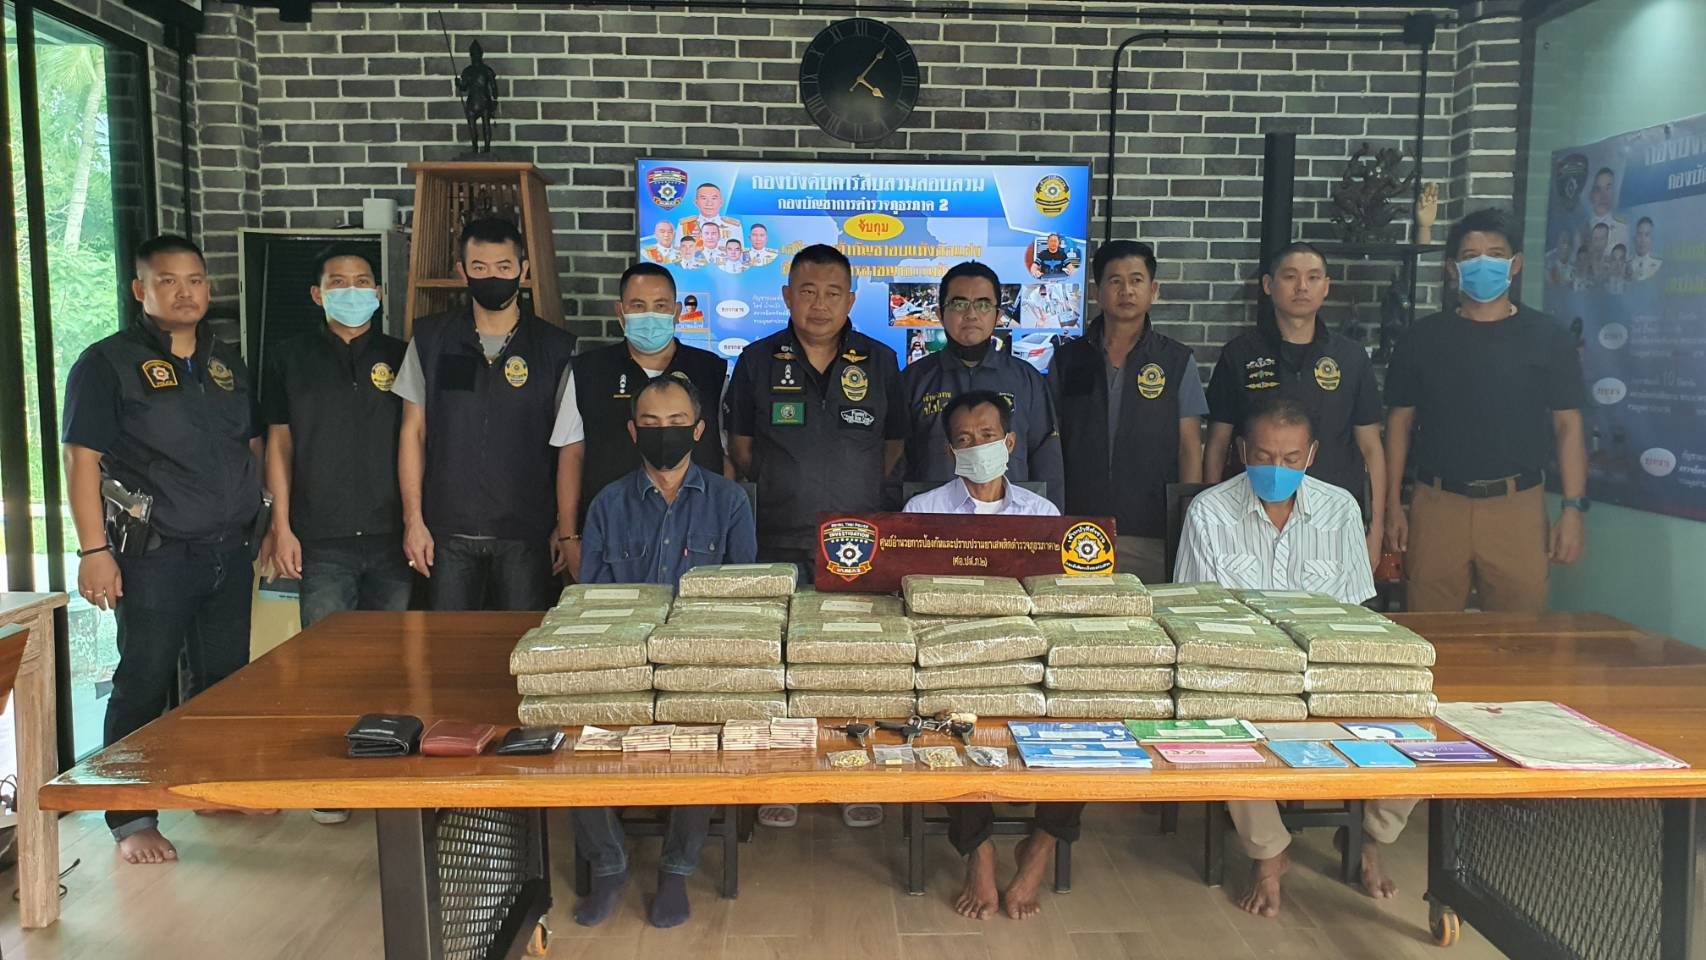 Pattaya police seized 66 kilograms of marijuana, crystal methamphetamine and piles of cash when they smashed a major drug network stretching from Pattaya to Saraburi.